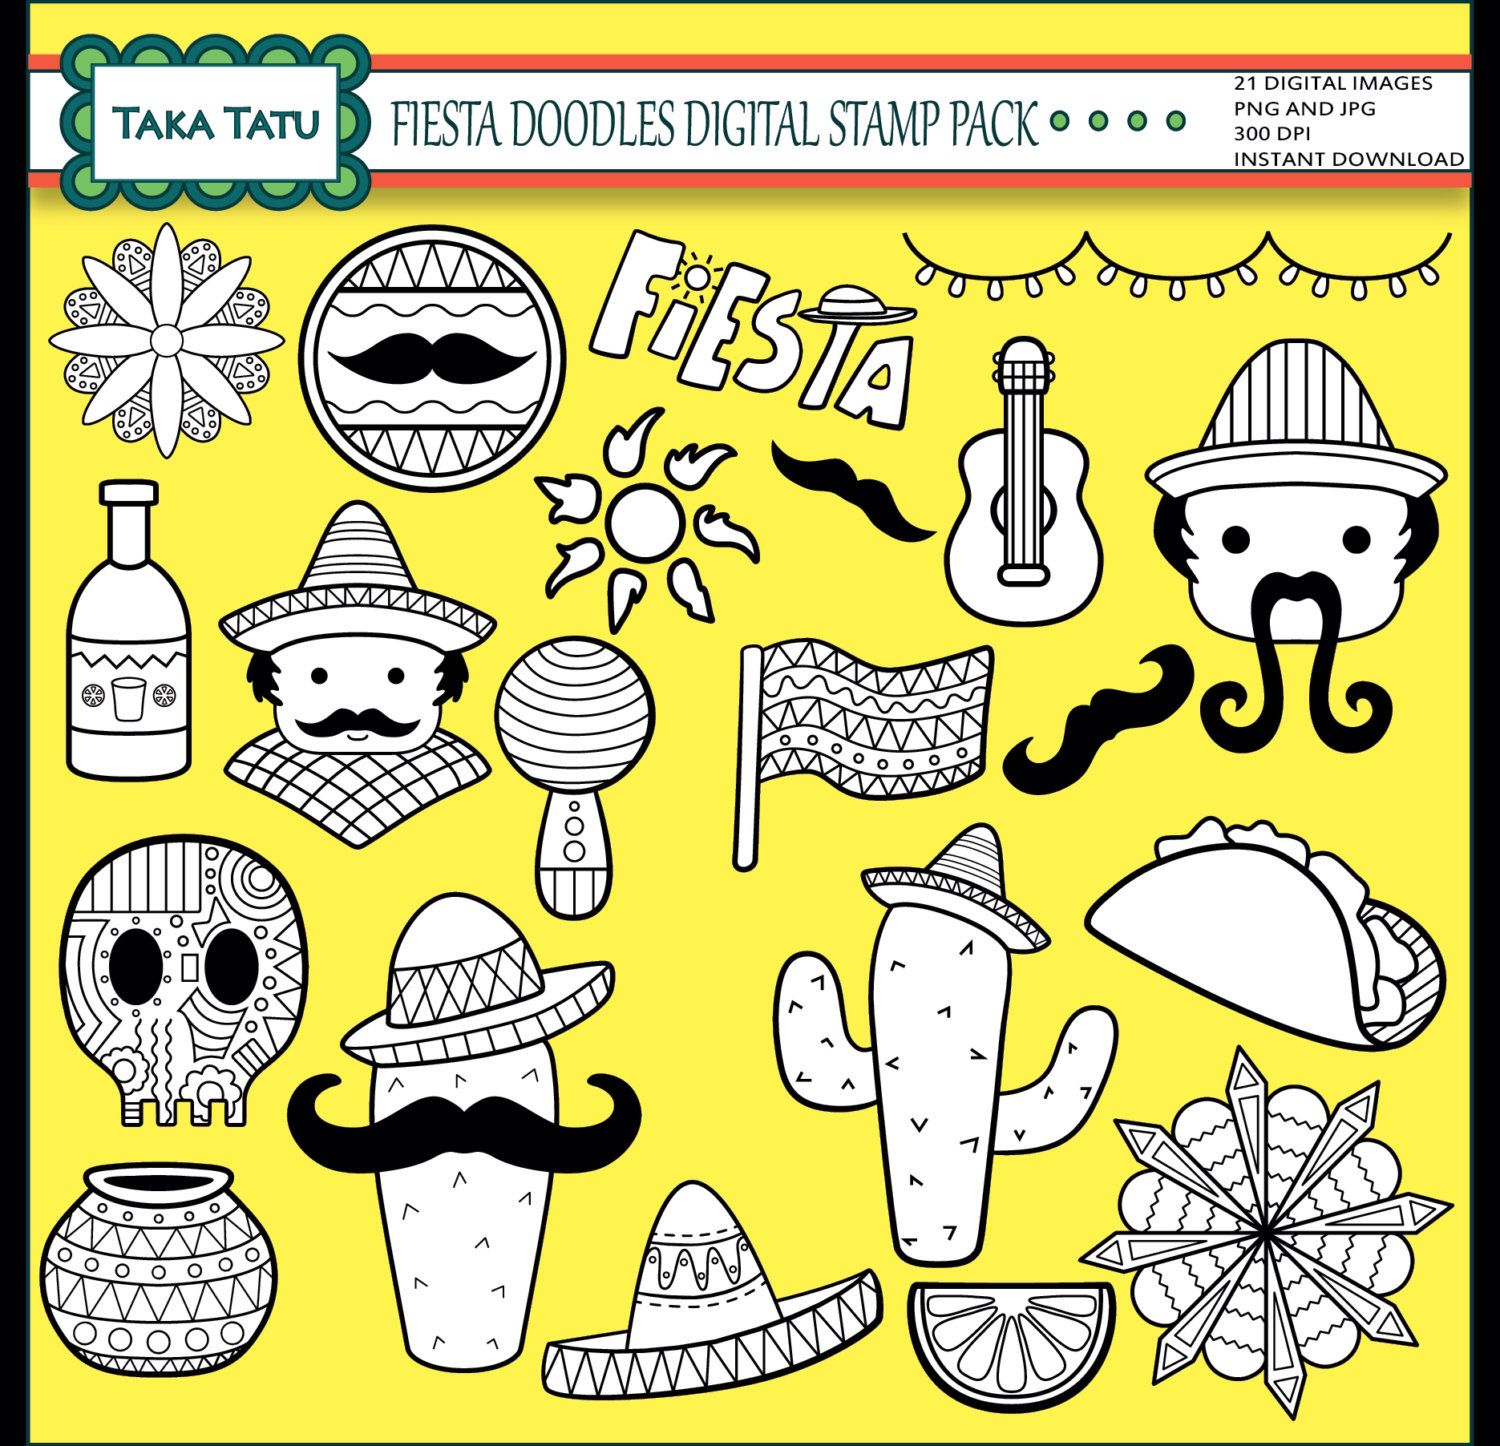 Fiesta Doodles Digital Stamp Pack Black And White Clipart Mexican Mexico Line Art Scrapbook Stamp Mustac In 2021 Digital Stamps Scrapbooking Stamps Doodles